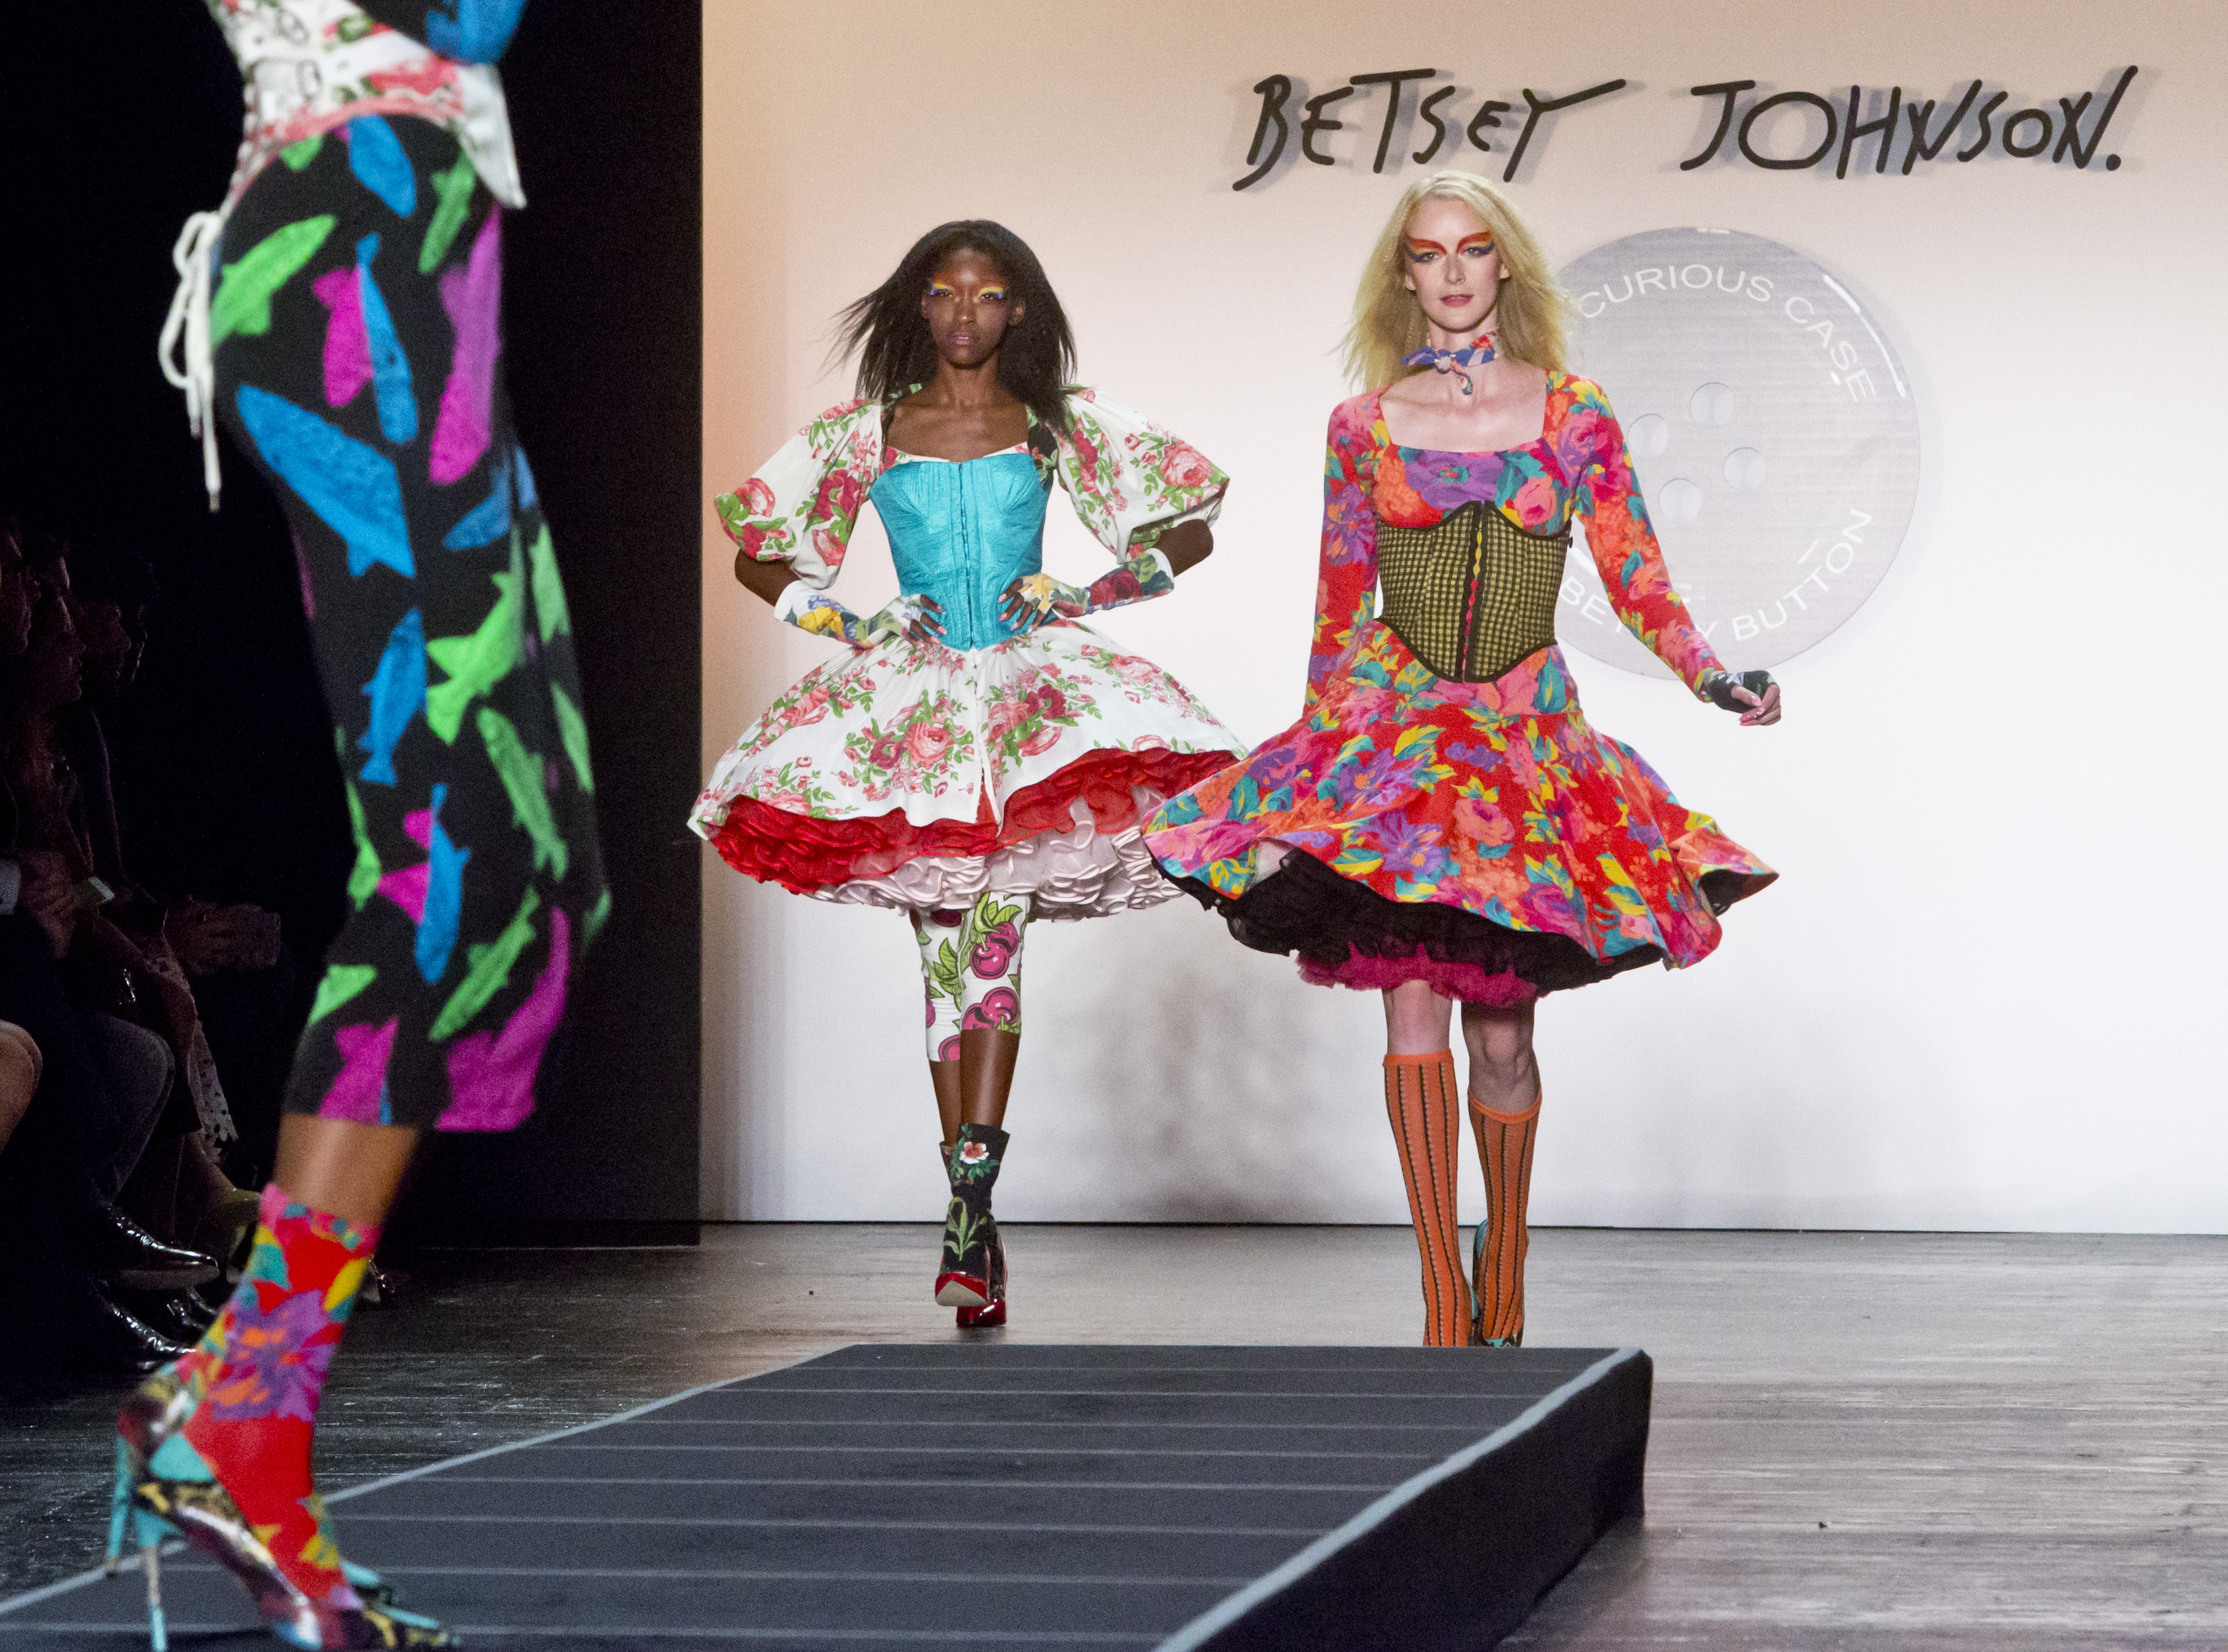 Betsey Johnson's Spring 2016 collection at Fashion Week in New York.